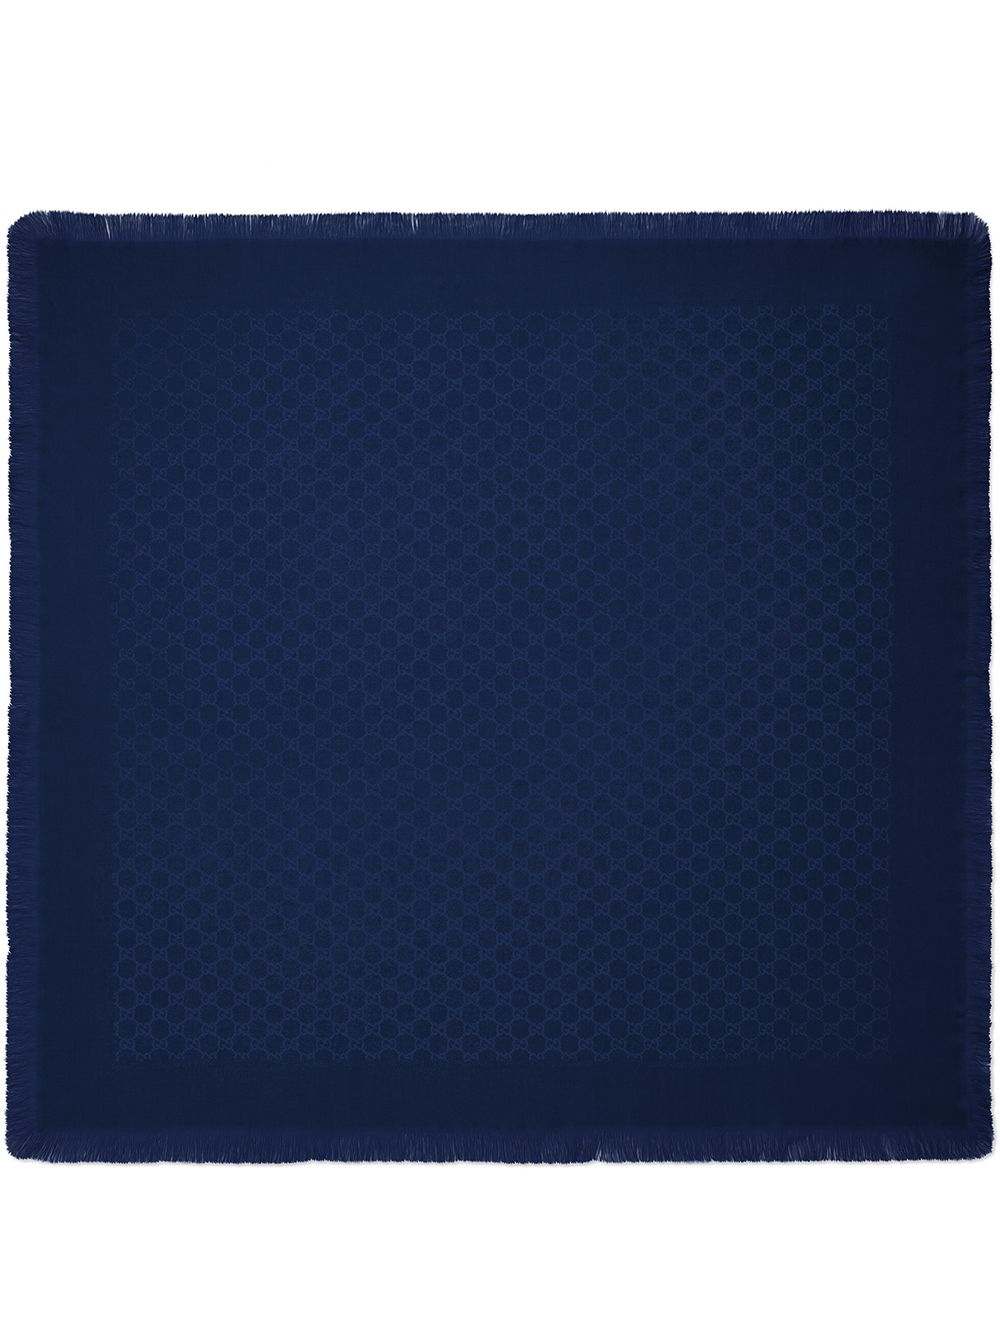 Gucci Kids Children's GG wool silk shawl - Blau von Gucci Kids